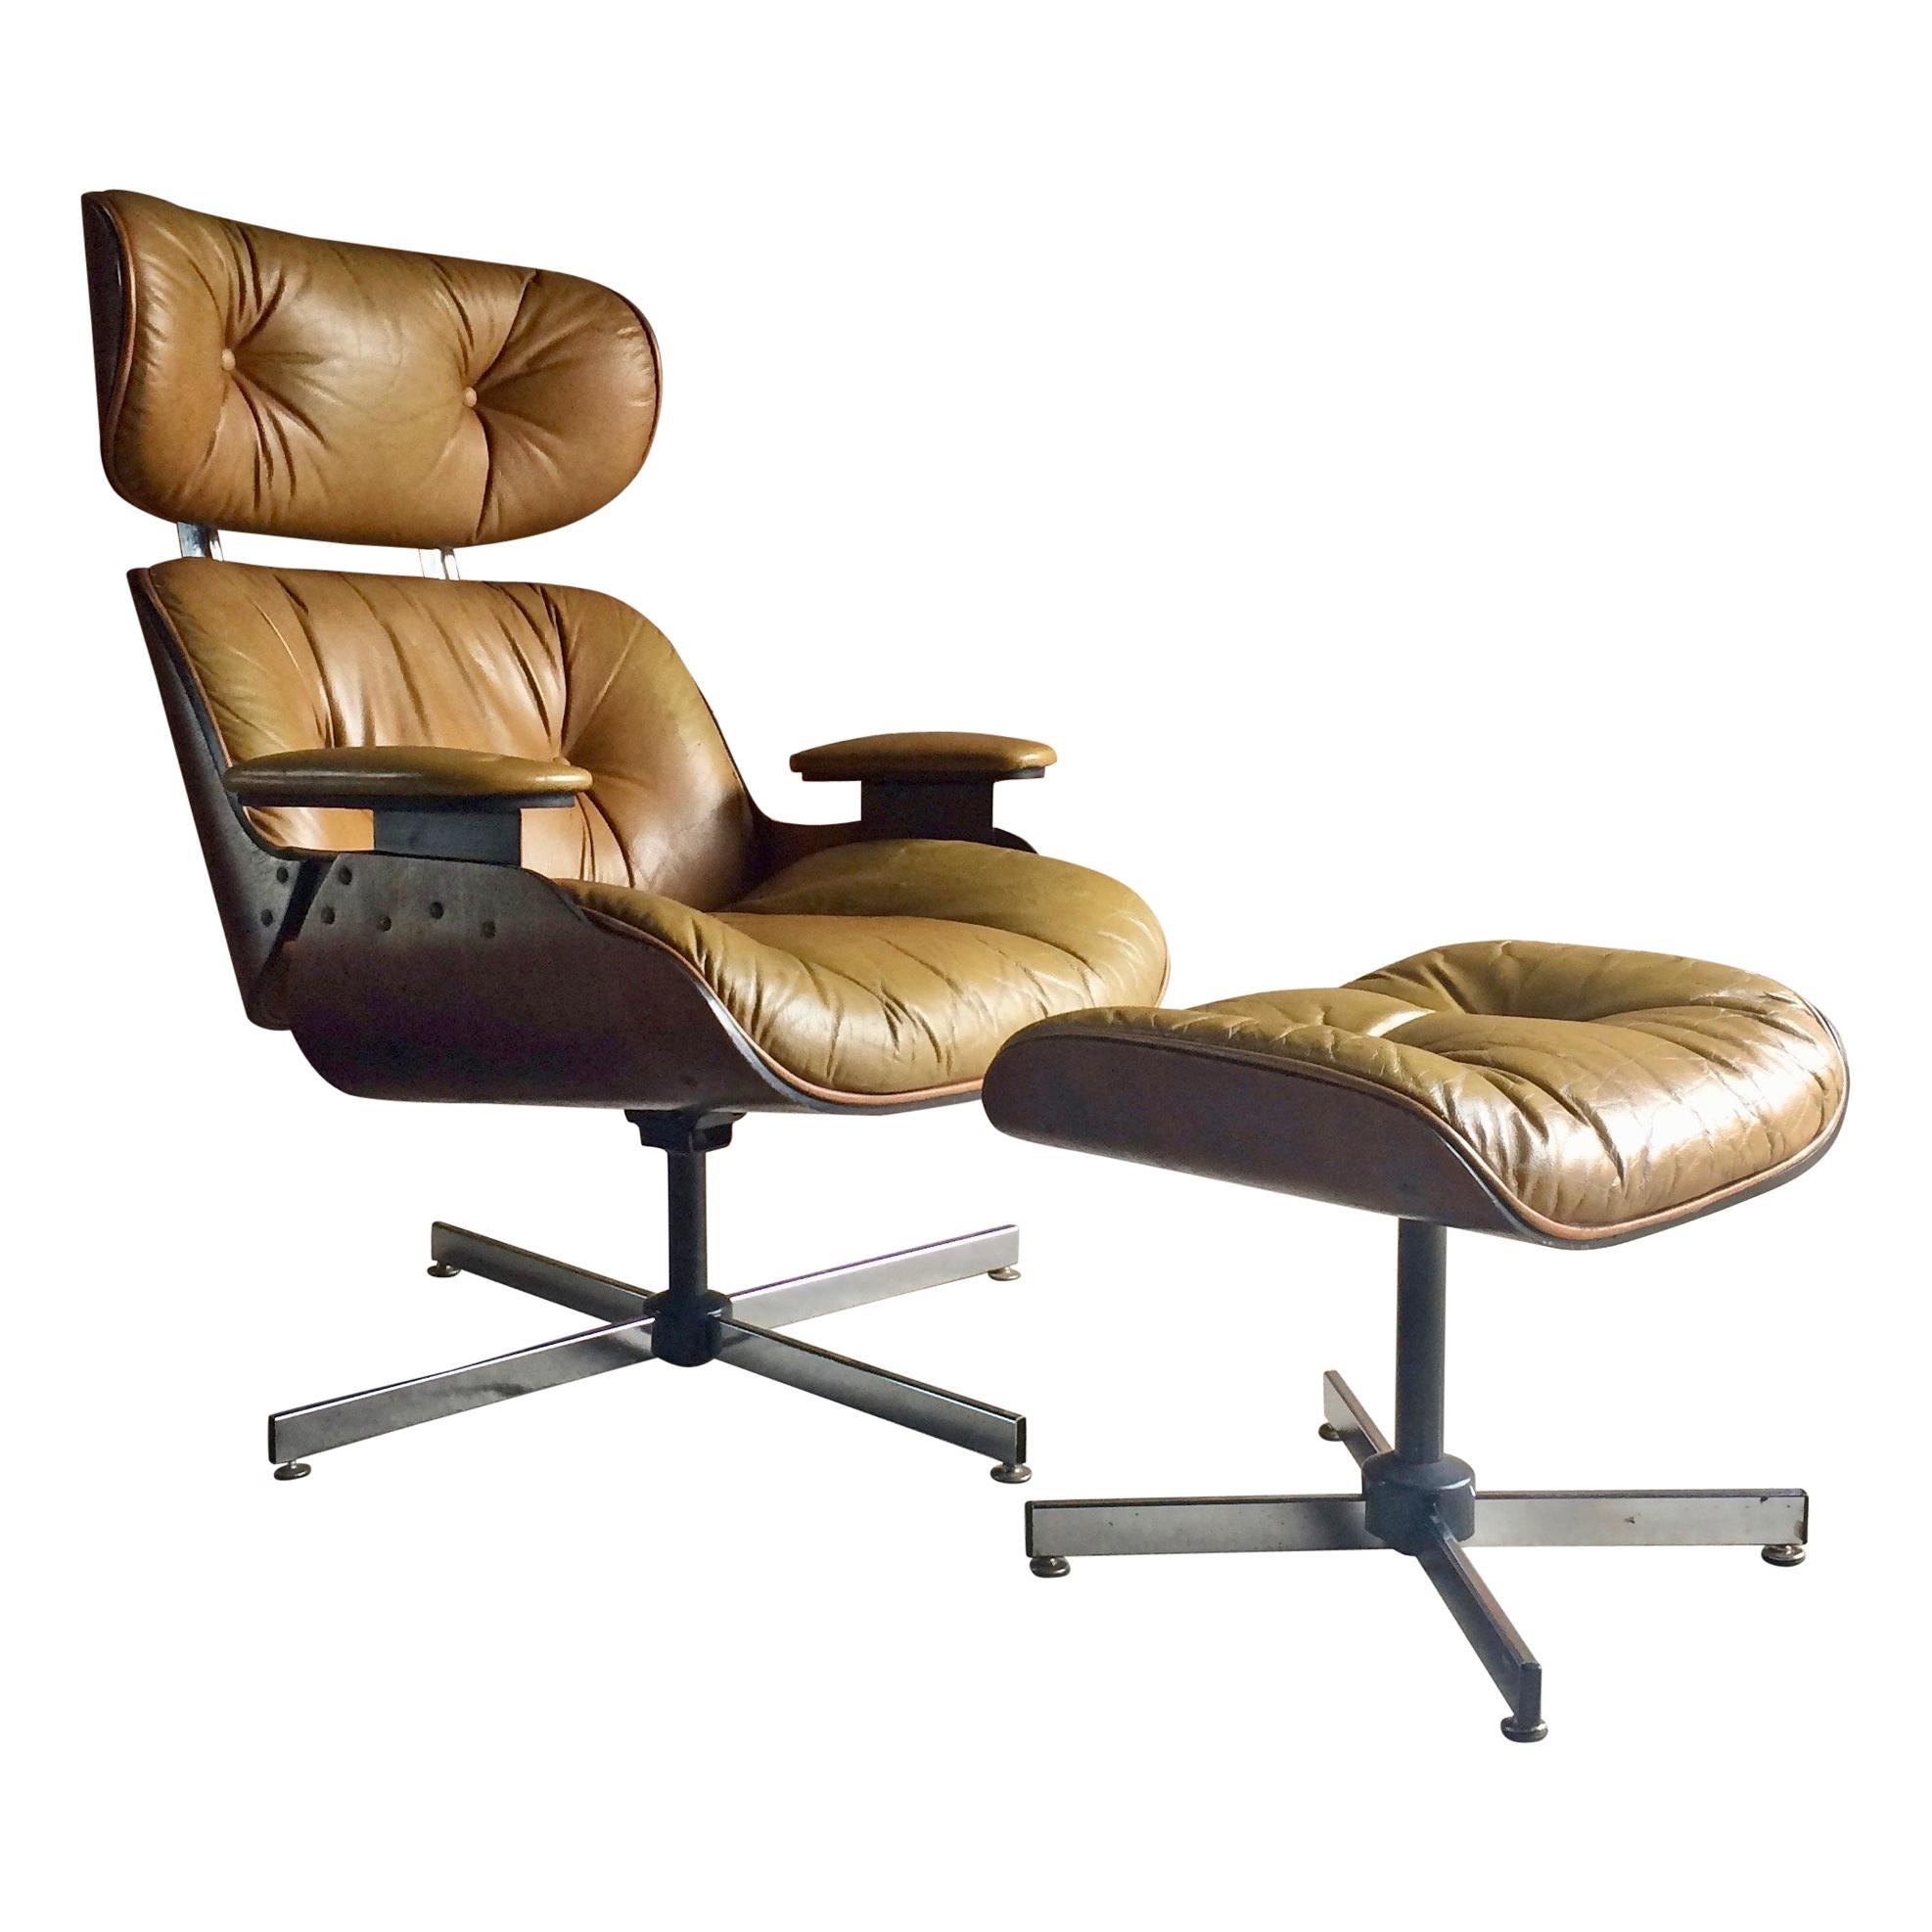 Incredible Midcentury Selig Plycraft Lounge Chair And Ottoman Circa Ibusinesslaw Wood Chair Design Ideas Ibusinesslaworg